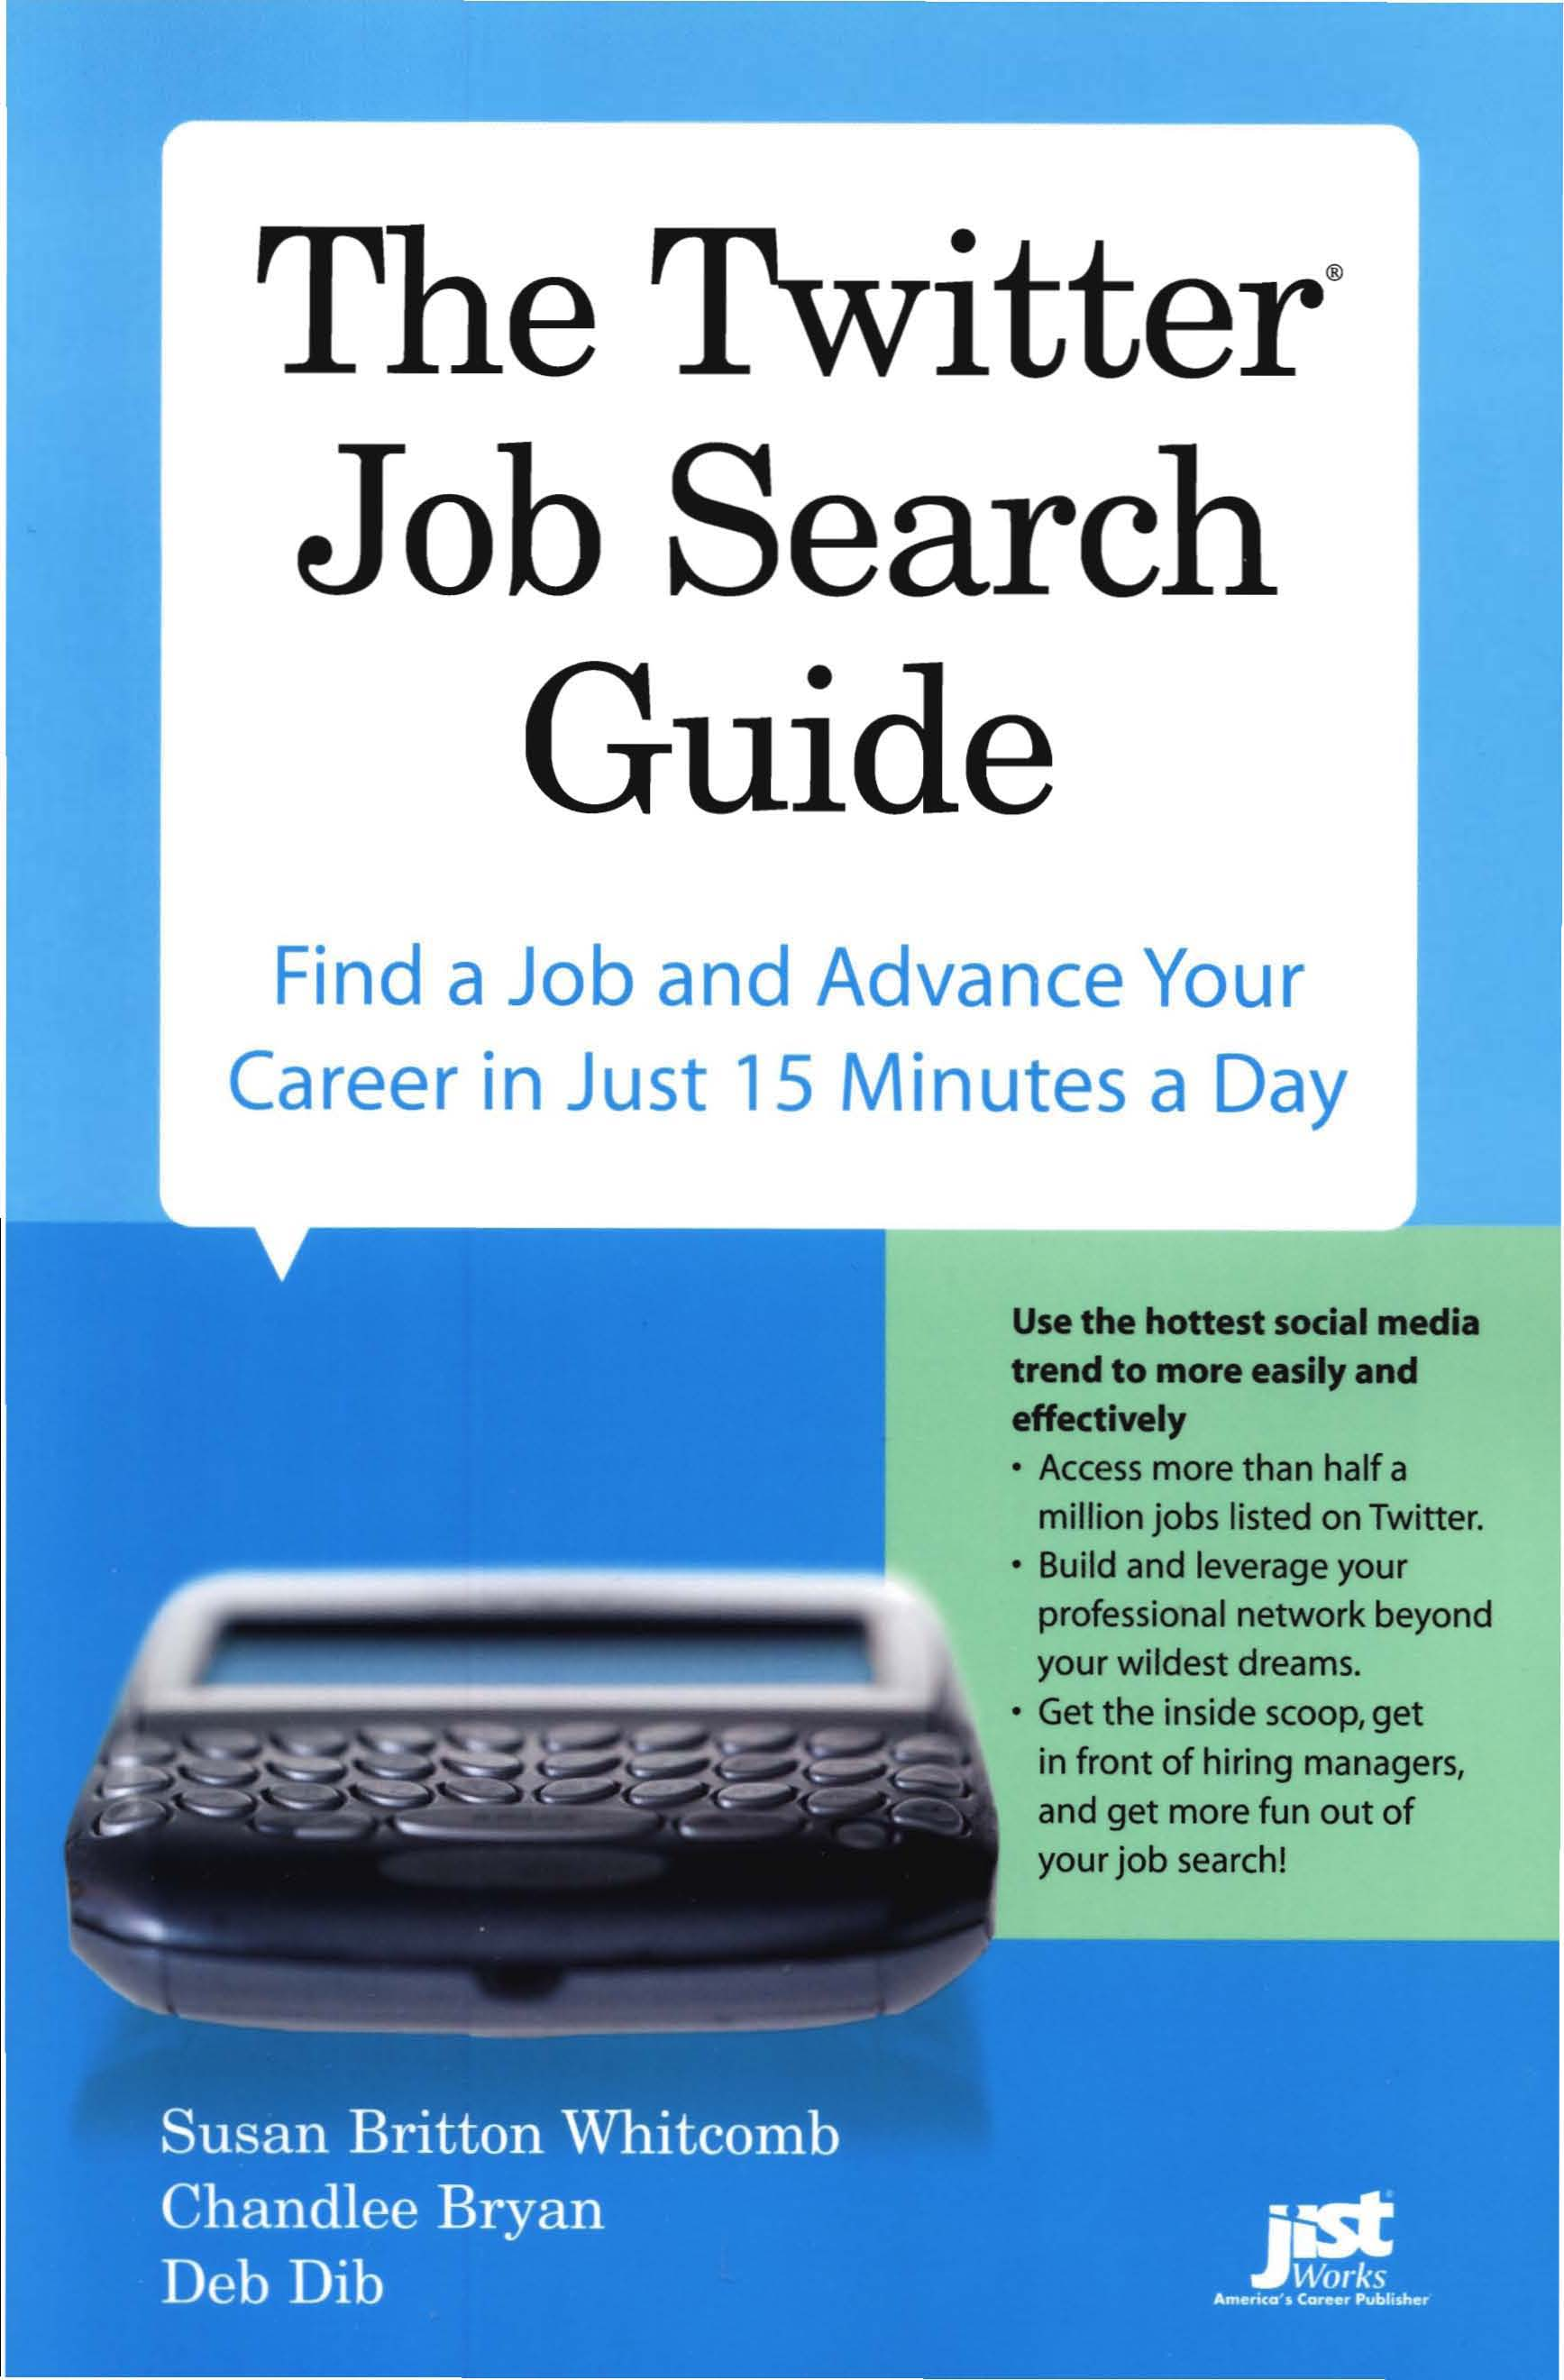 Find your dream job - Twitter Careers